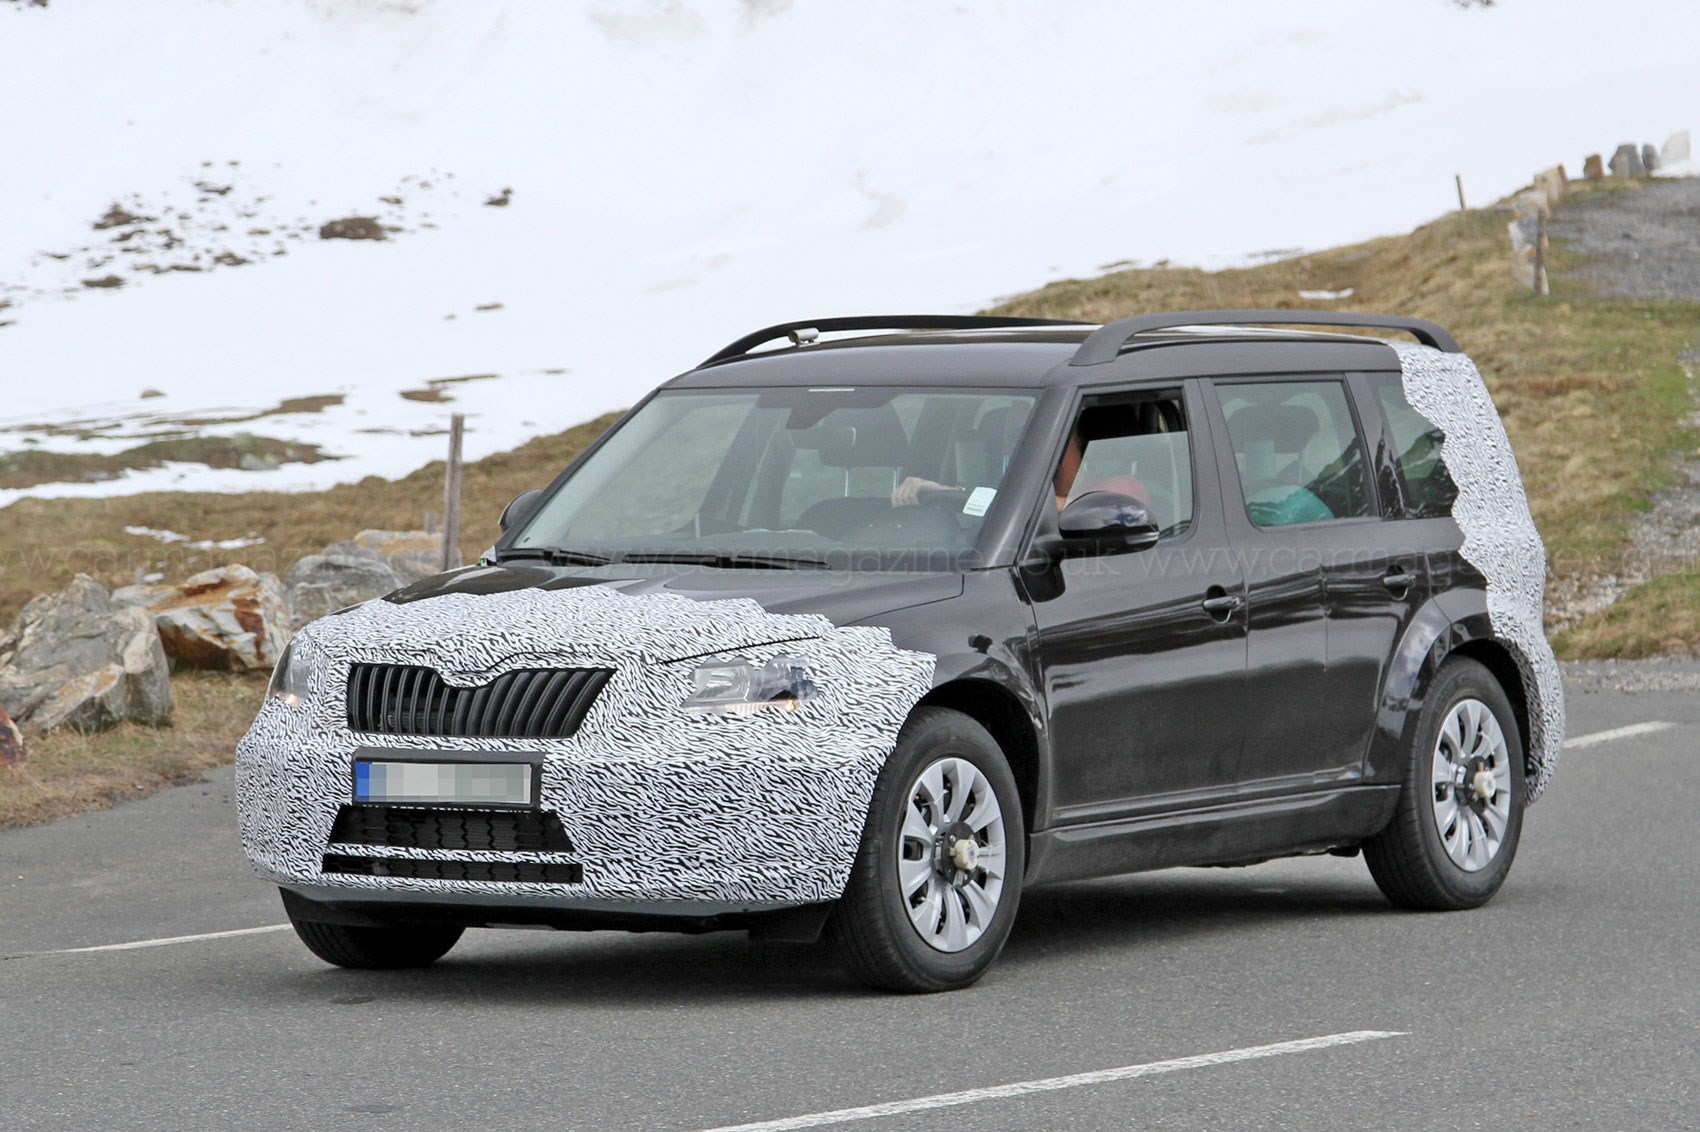 Skoda yeti 2017 review release date new automotive trends skoda - Largest Skoda Suv Will Be Available As A Seven Seater